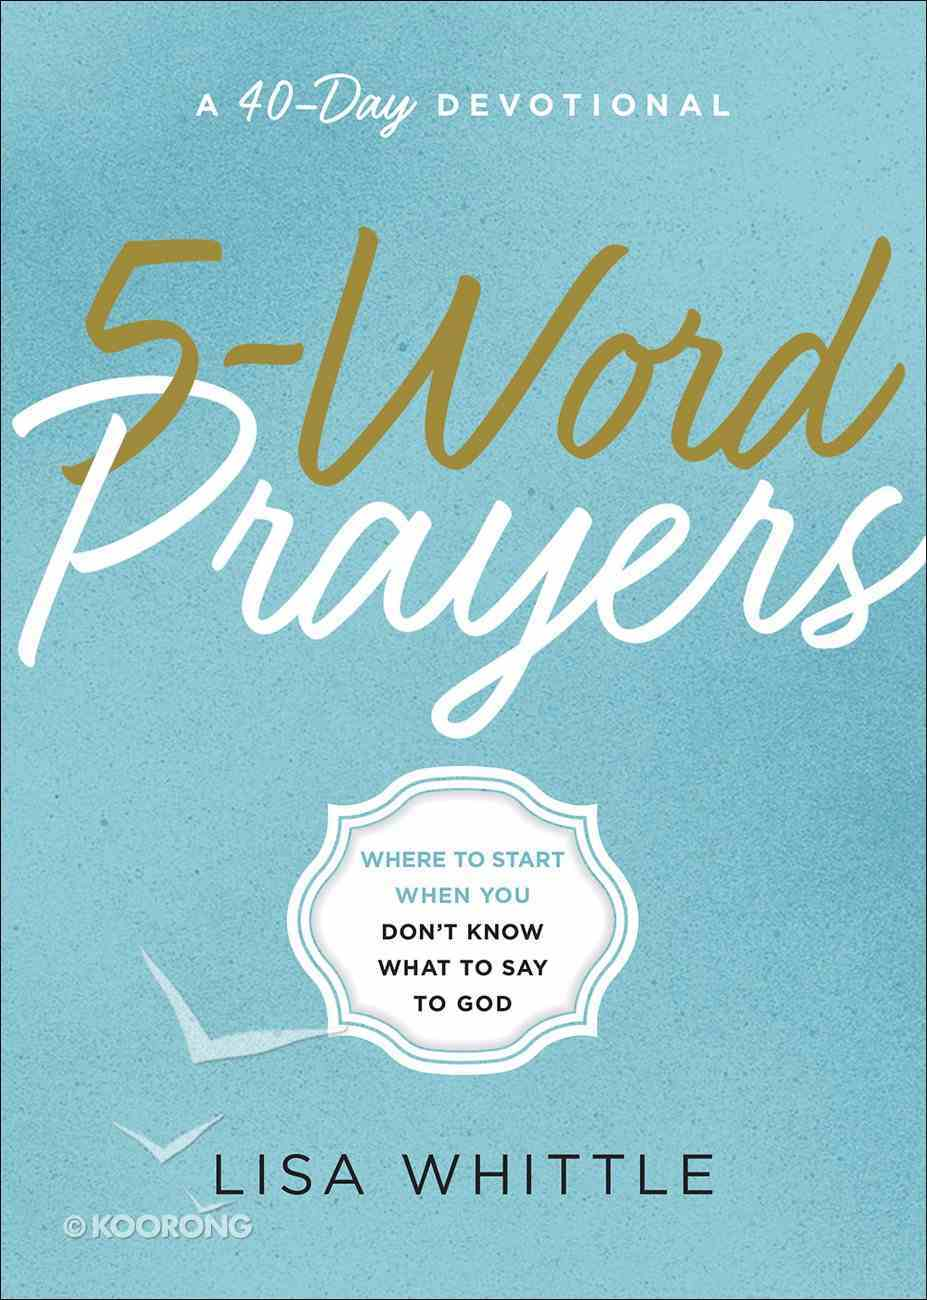 5-Word Prayers: Where to Start When You Don't Know What to Say to God Paperback